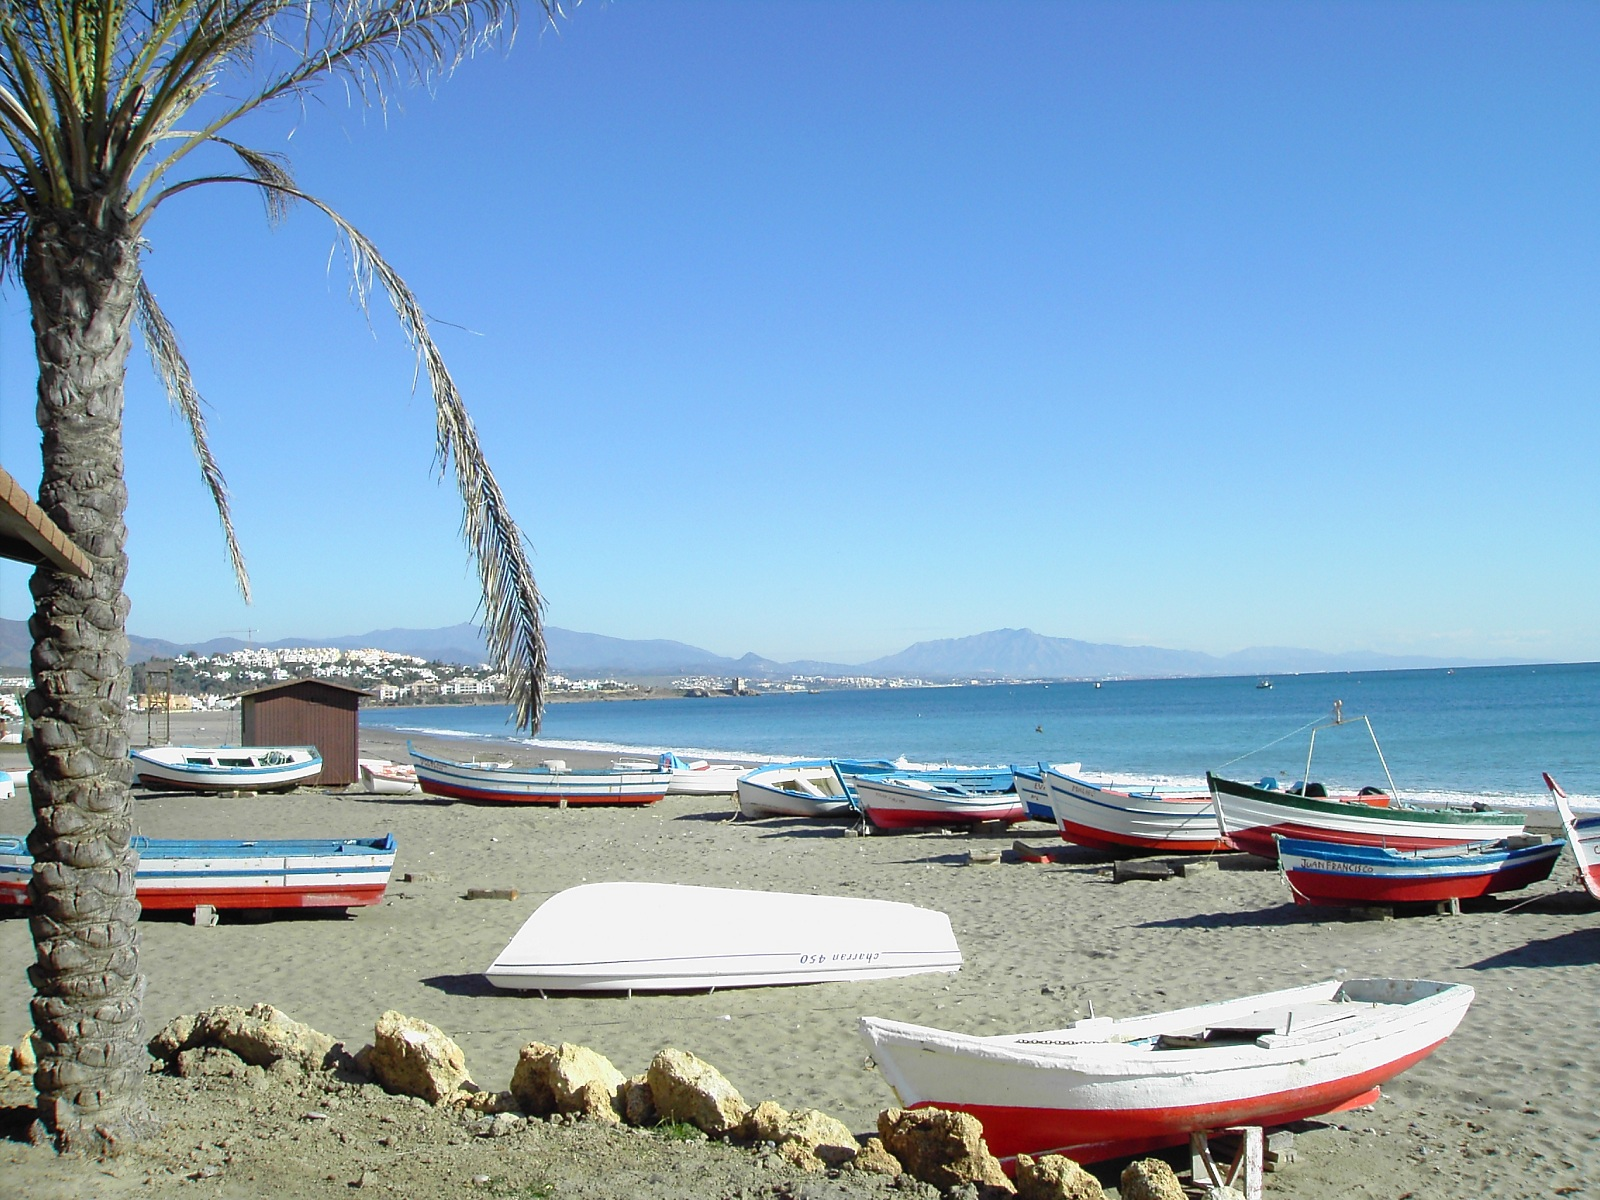 Holiday in Spain, Costa del Sol, Spain, Beach view